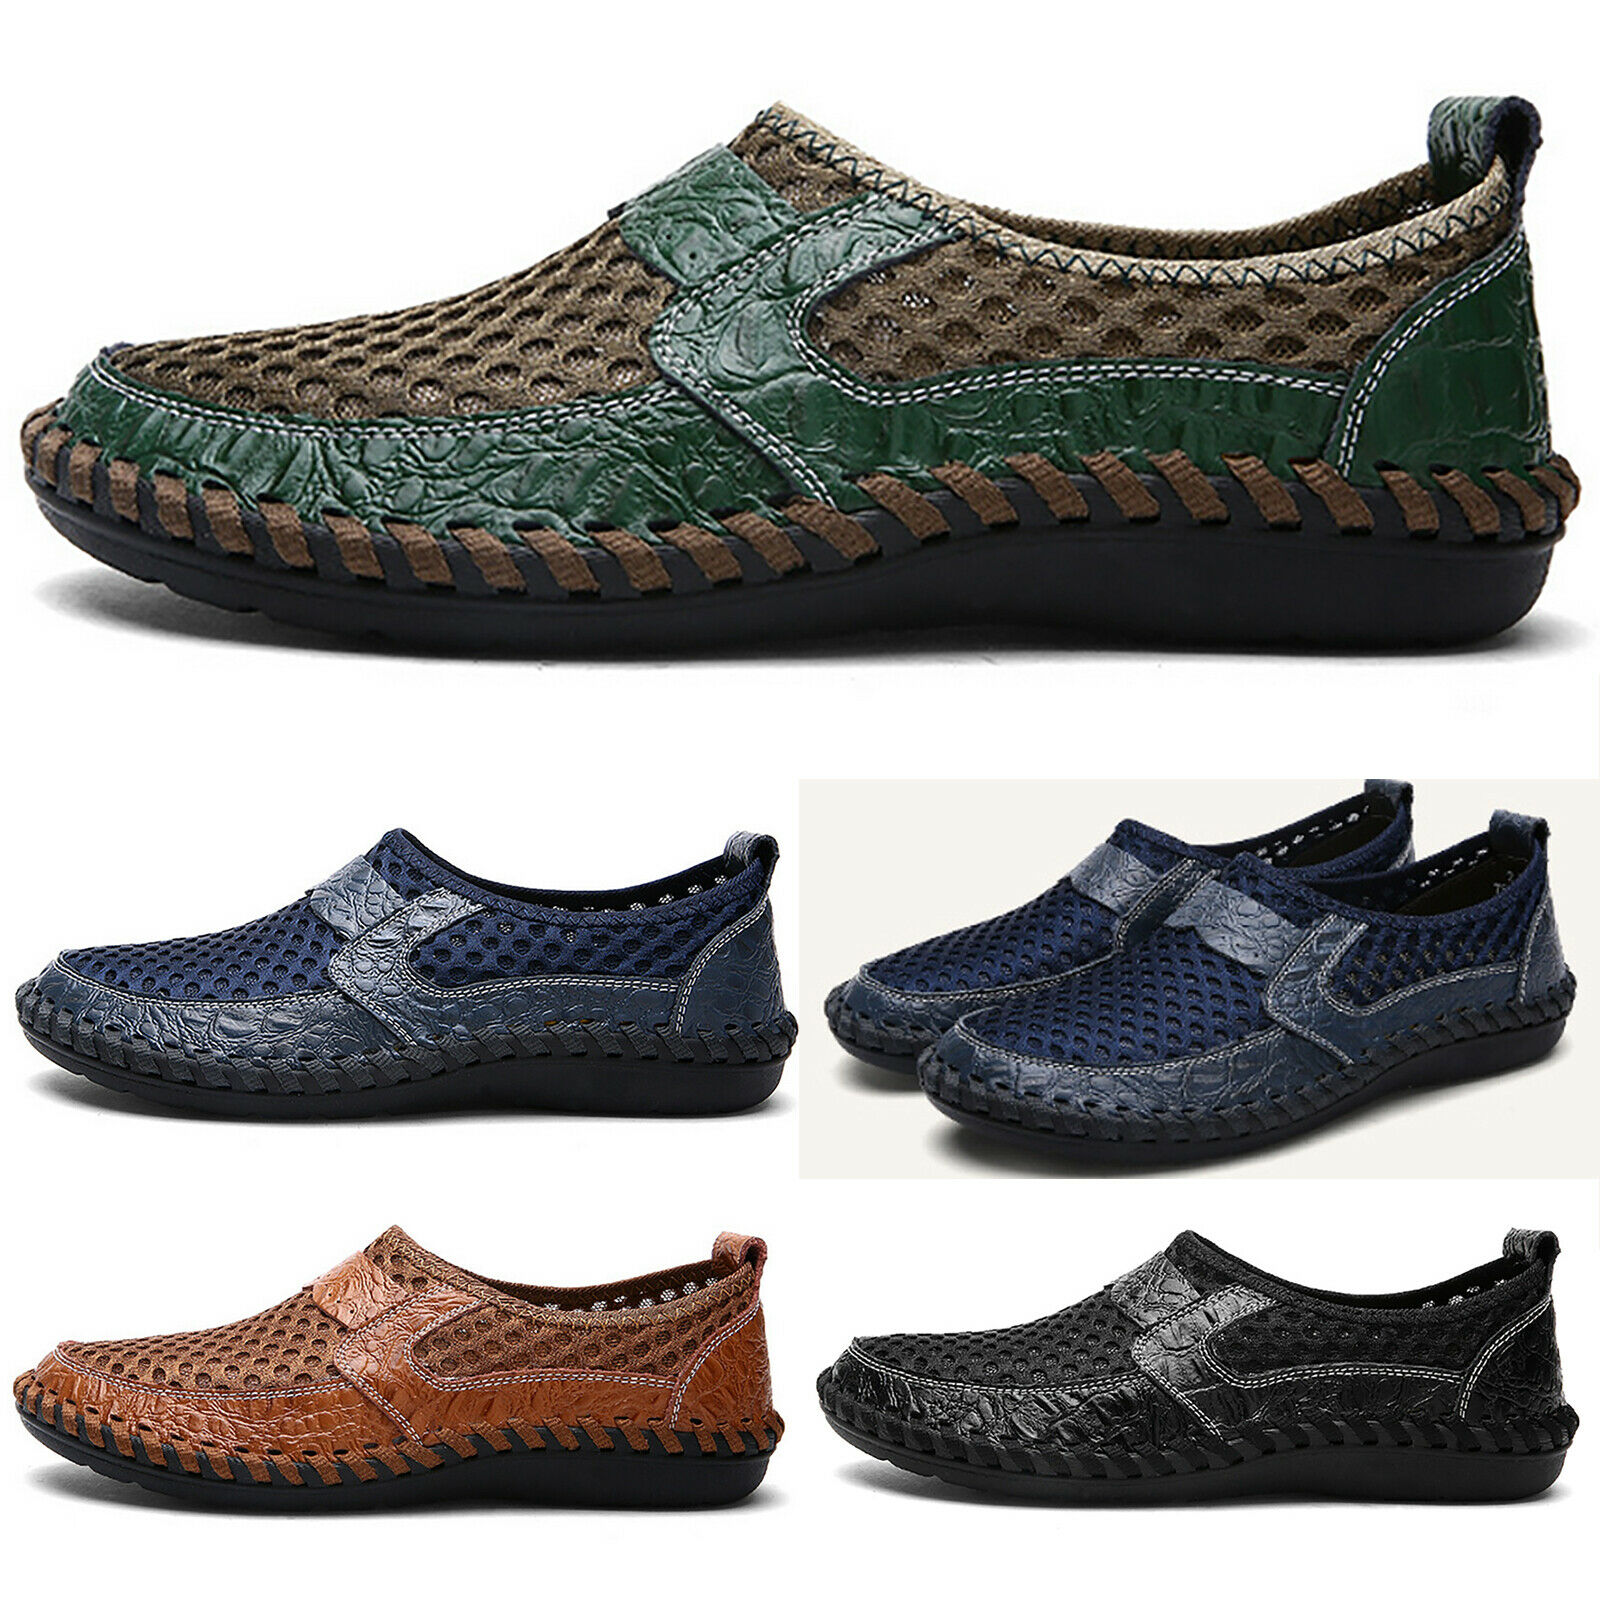 Men Leather Driving Casual Boat Shoes Moccasin Slip On Summer Loafers Size 7-12 1